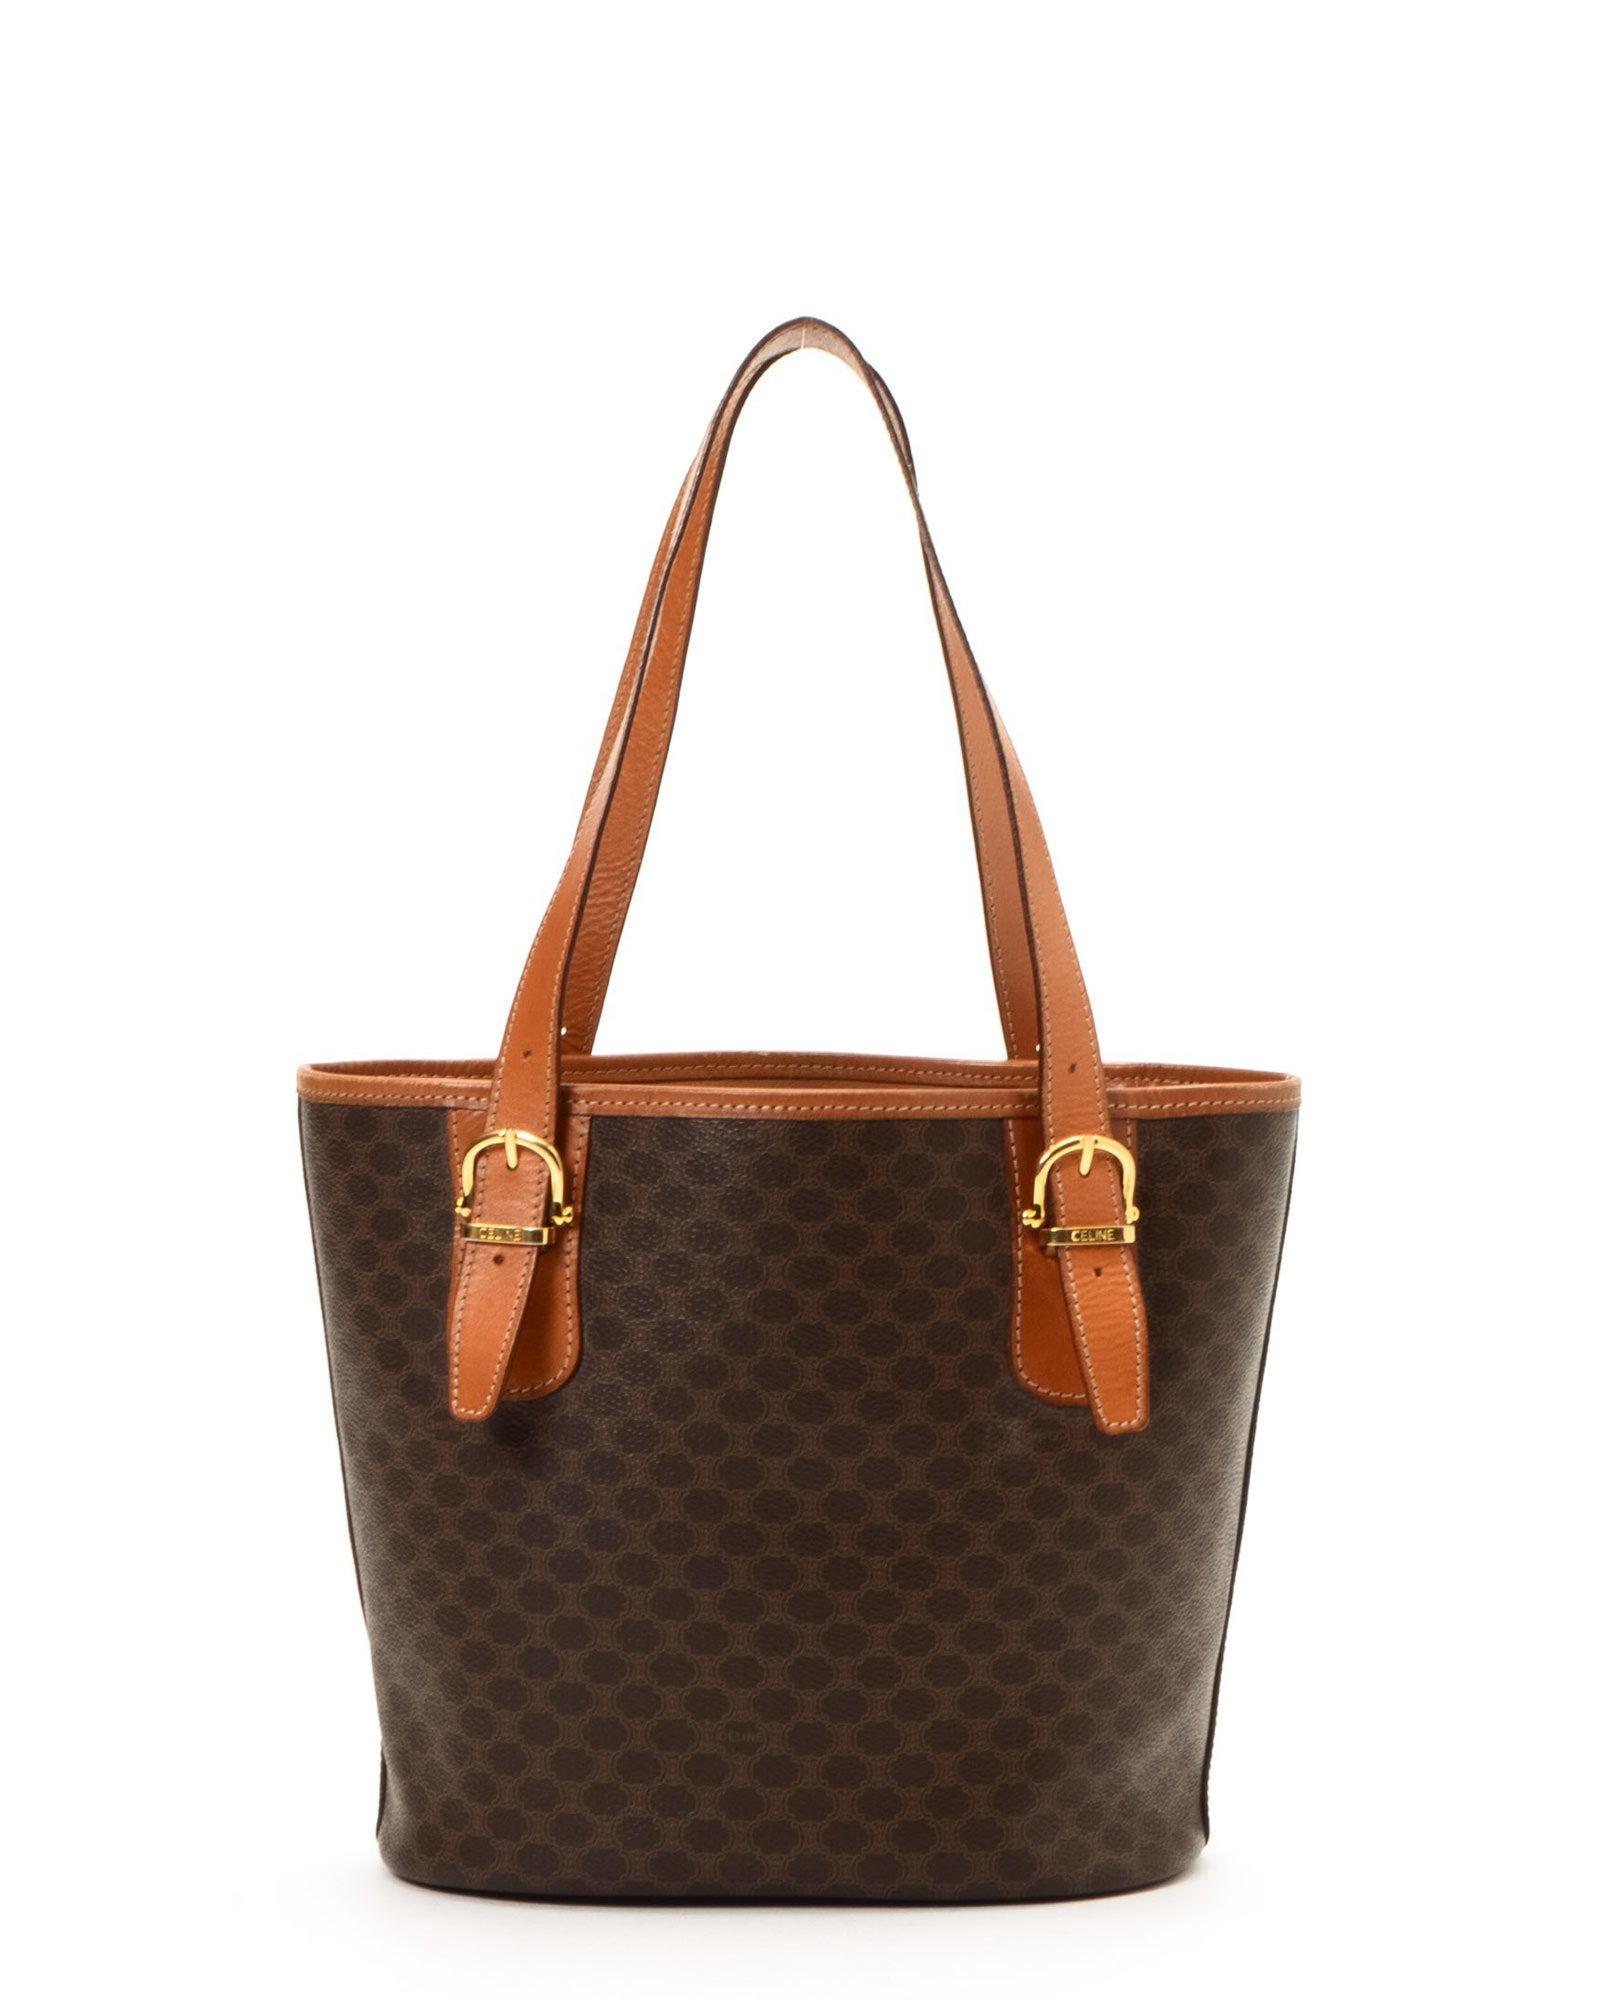 Lyst - Céline Cã‰Line Brown Tote Bag - Vintage in Brown 304e1c7048965